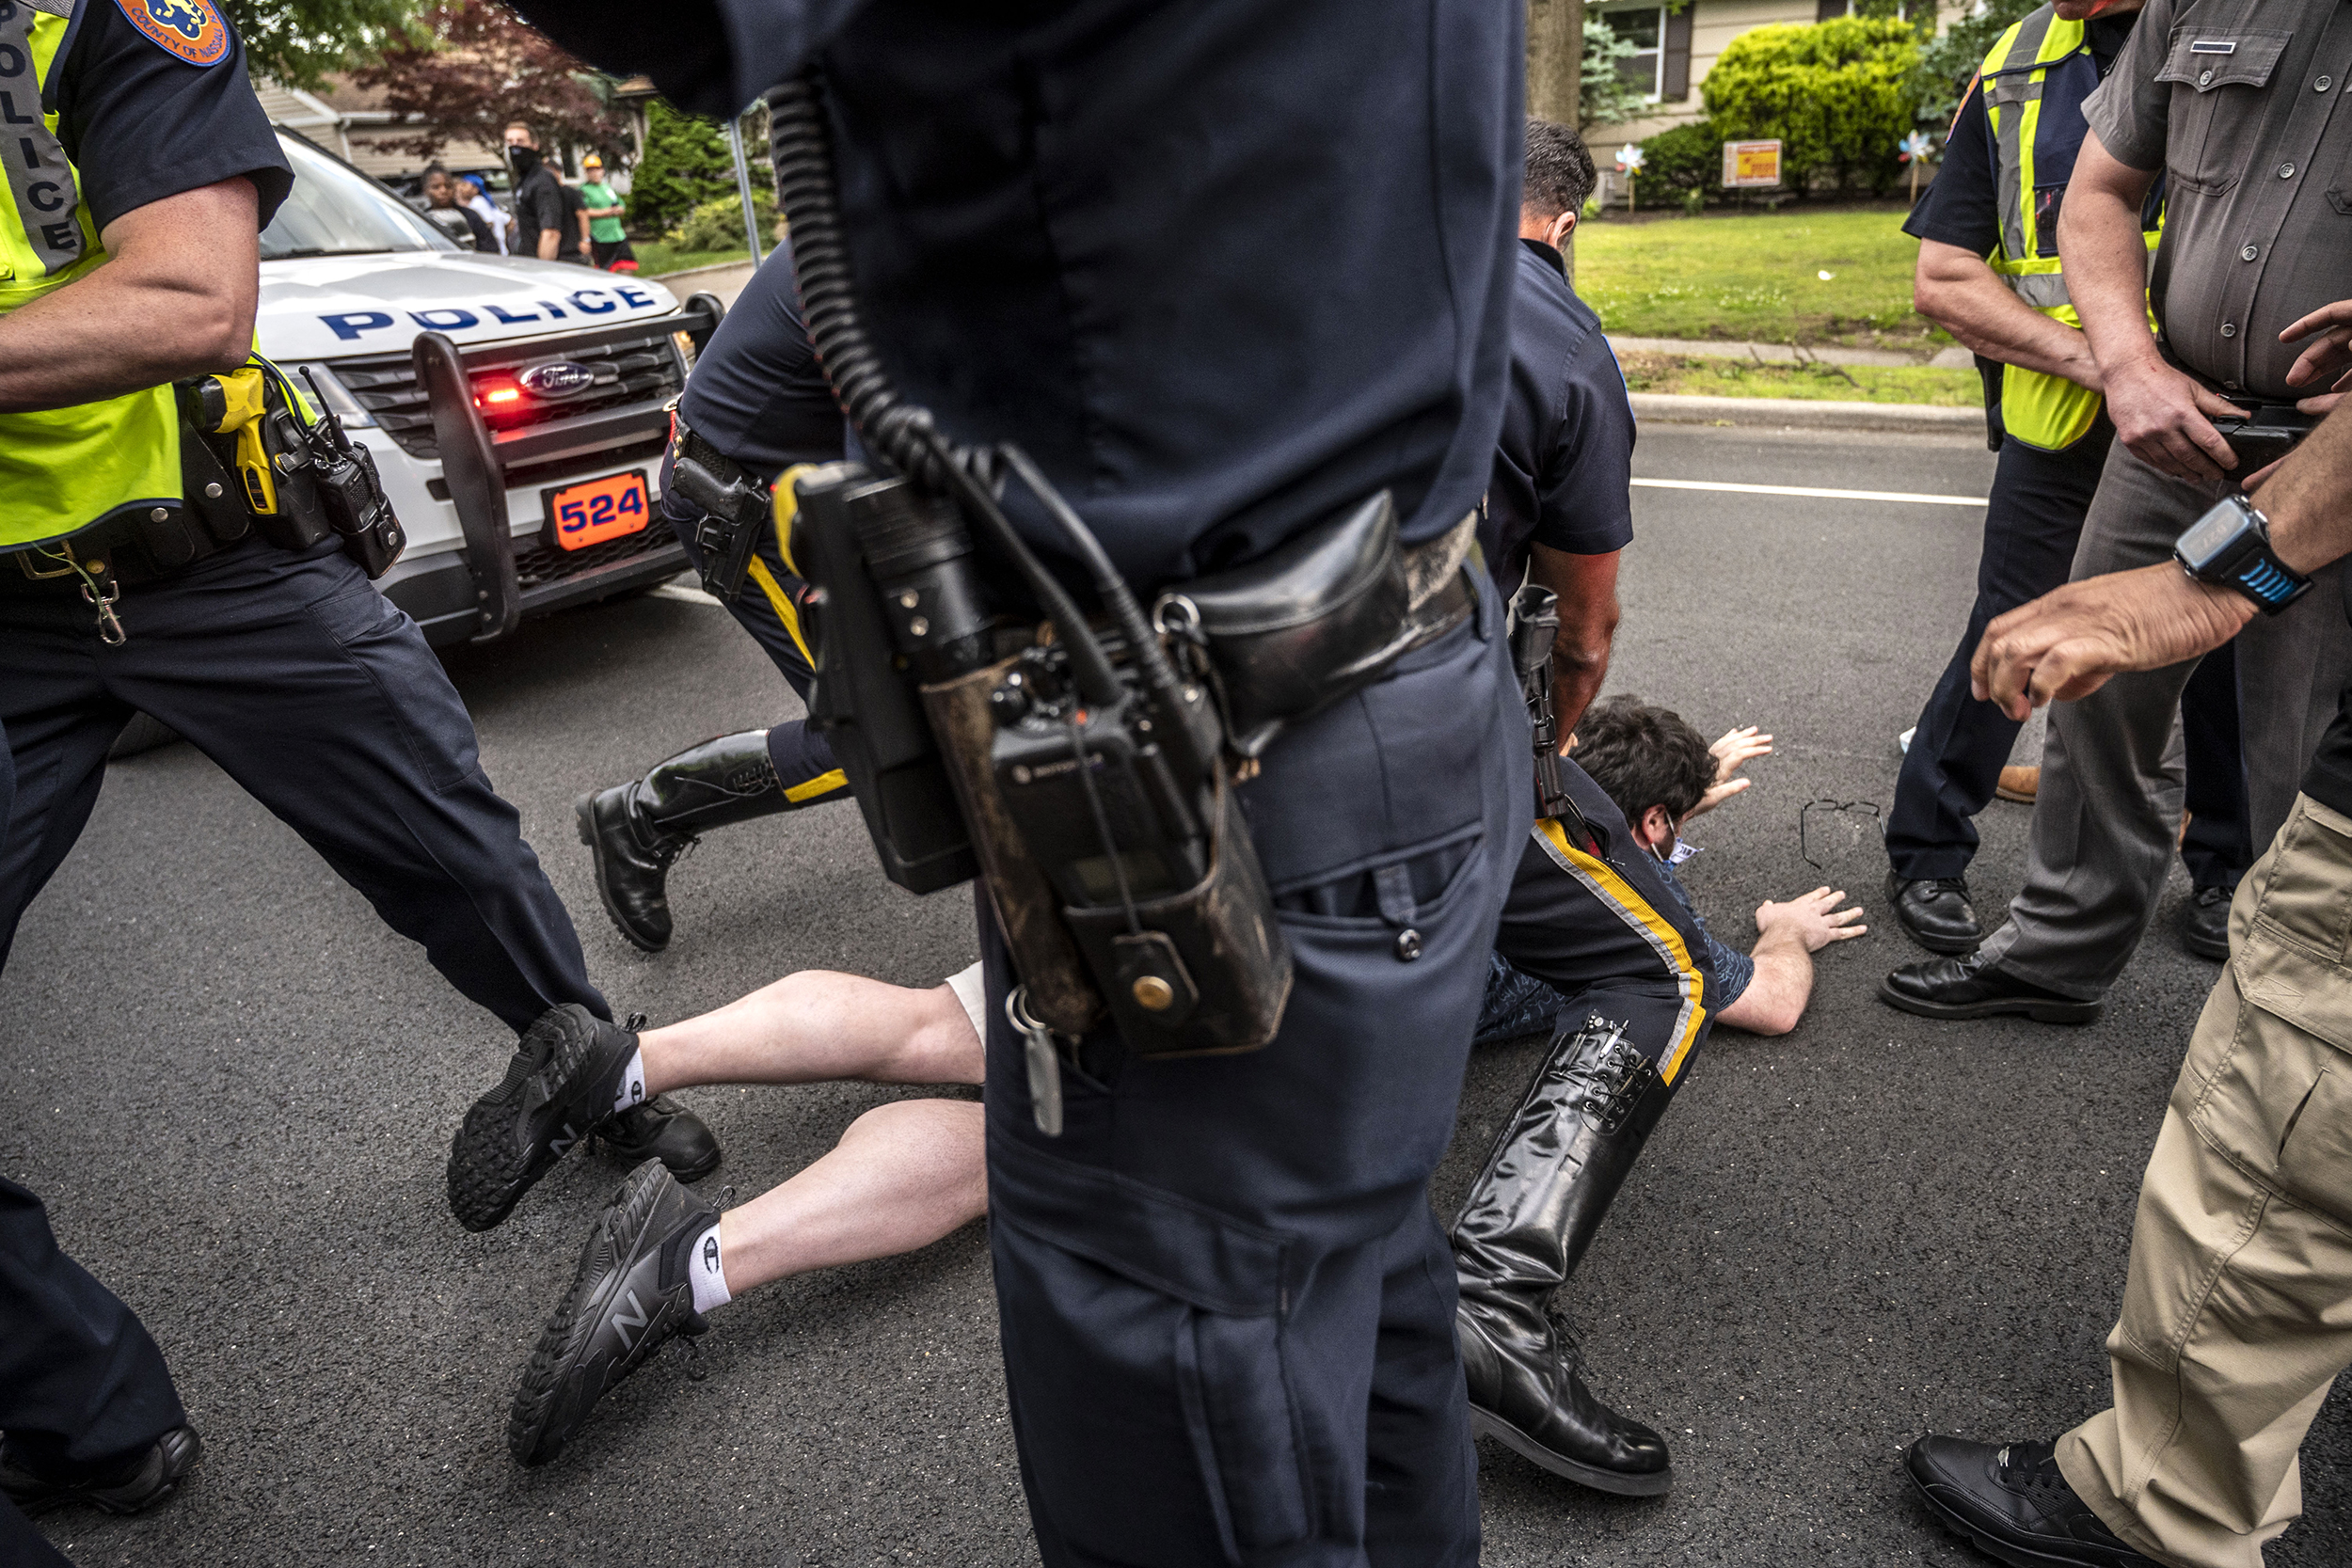 N.Y. county lawmakers pass contentious bill allowing police to sue protesters for harassment